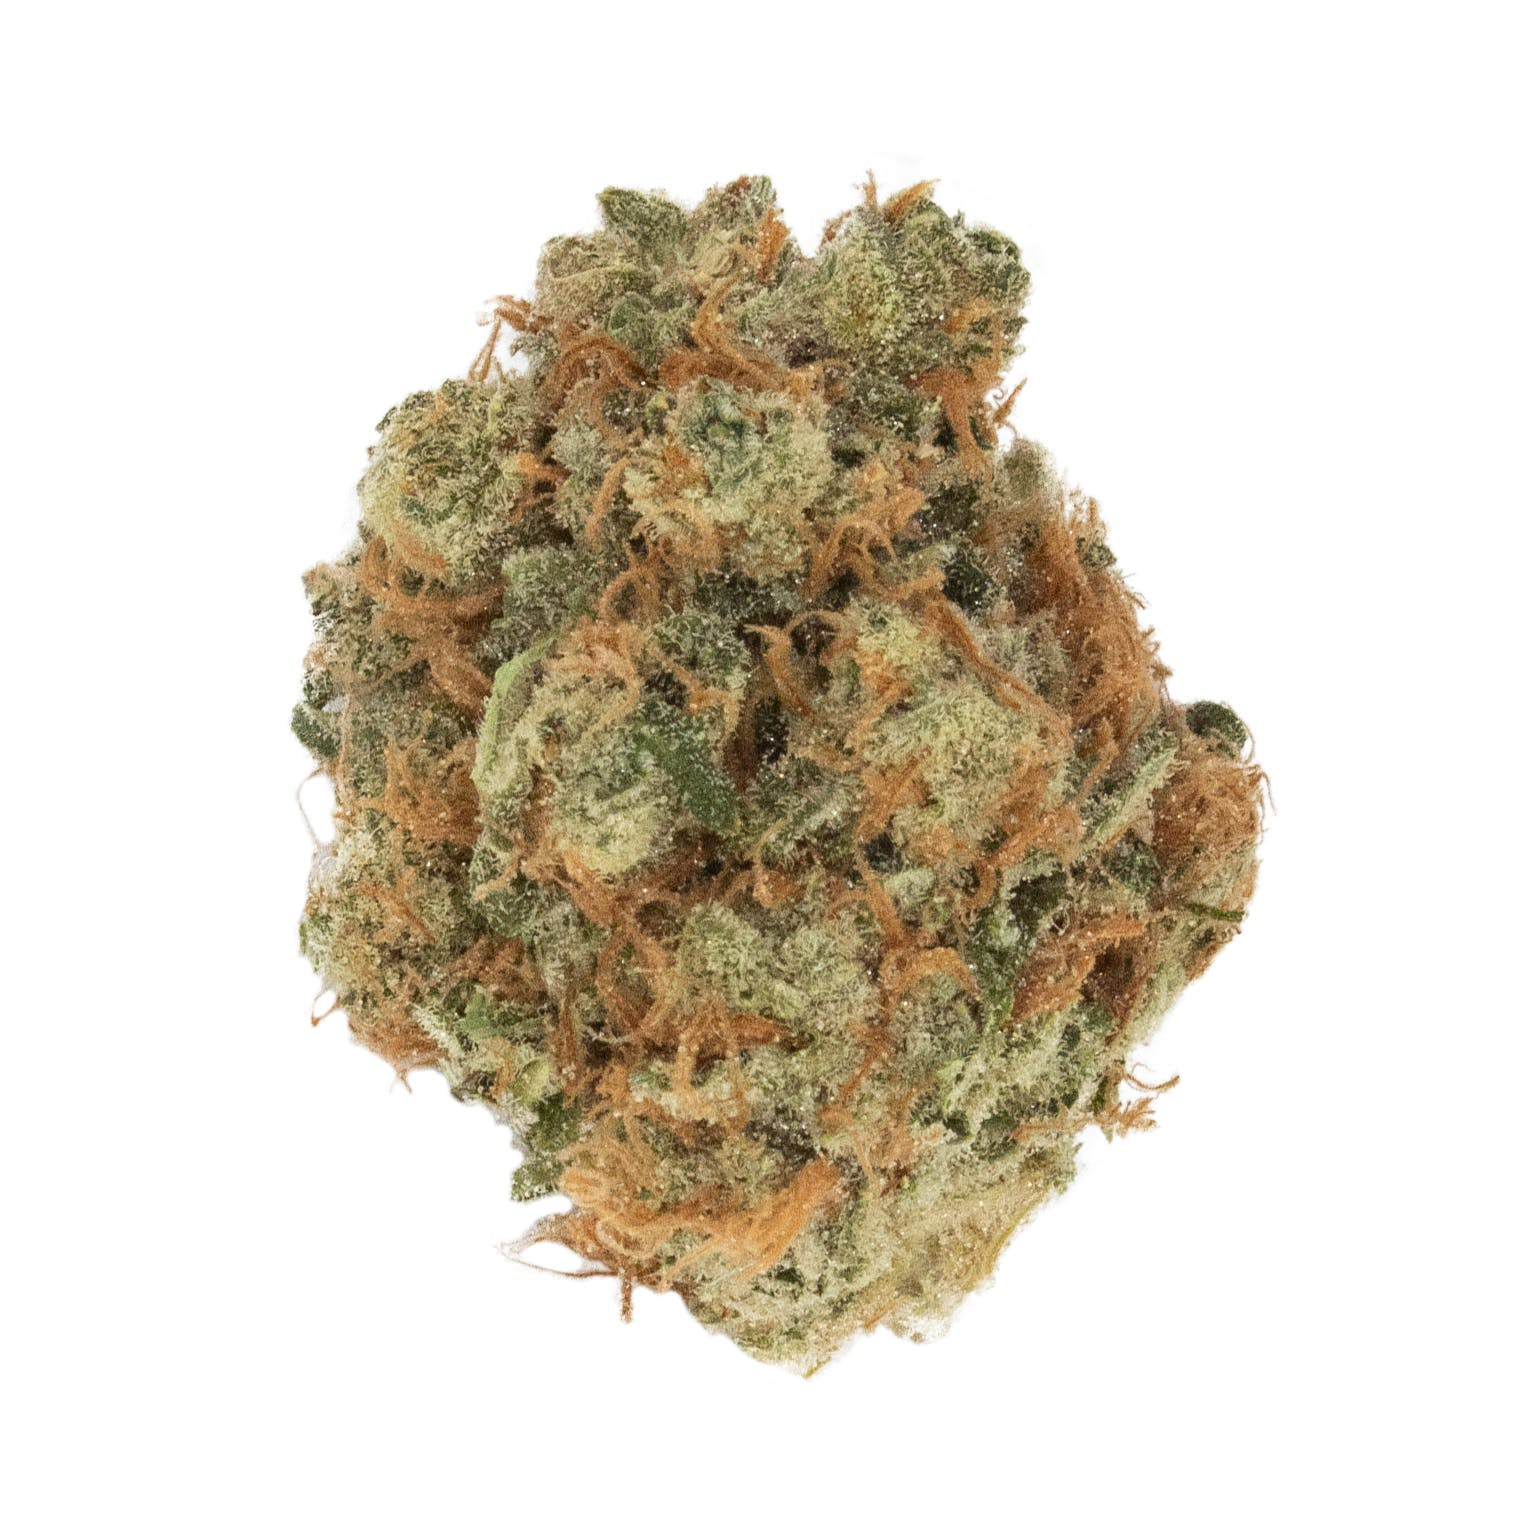 marijuana-dispensaries-7221-montevideo-road-2c-ste-150-jessup-white-sour